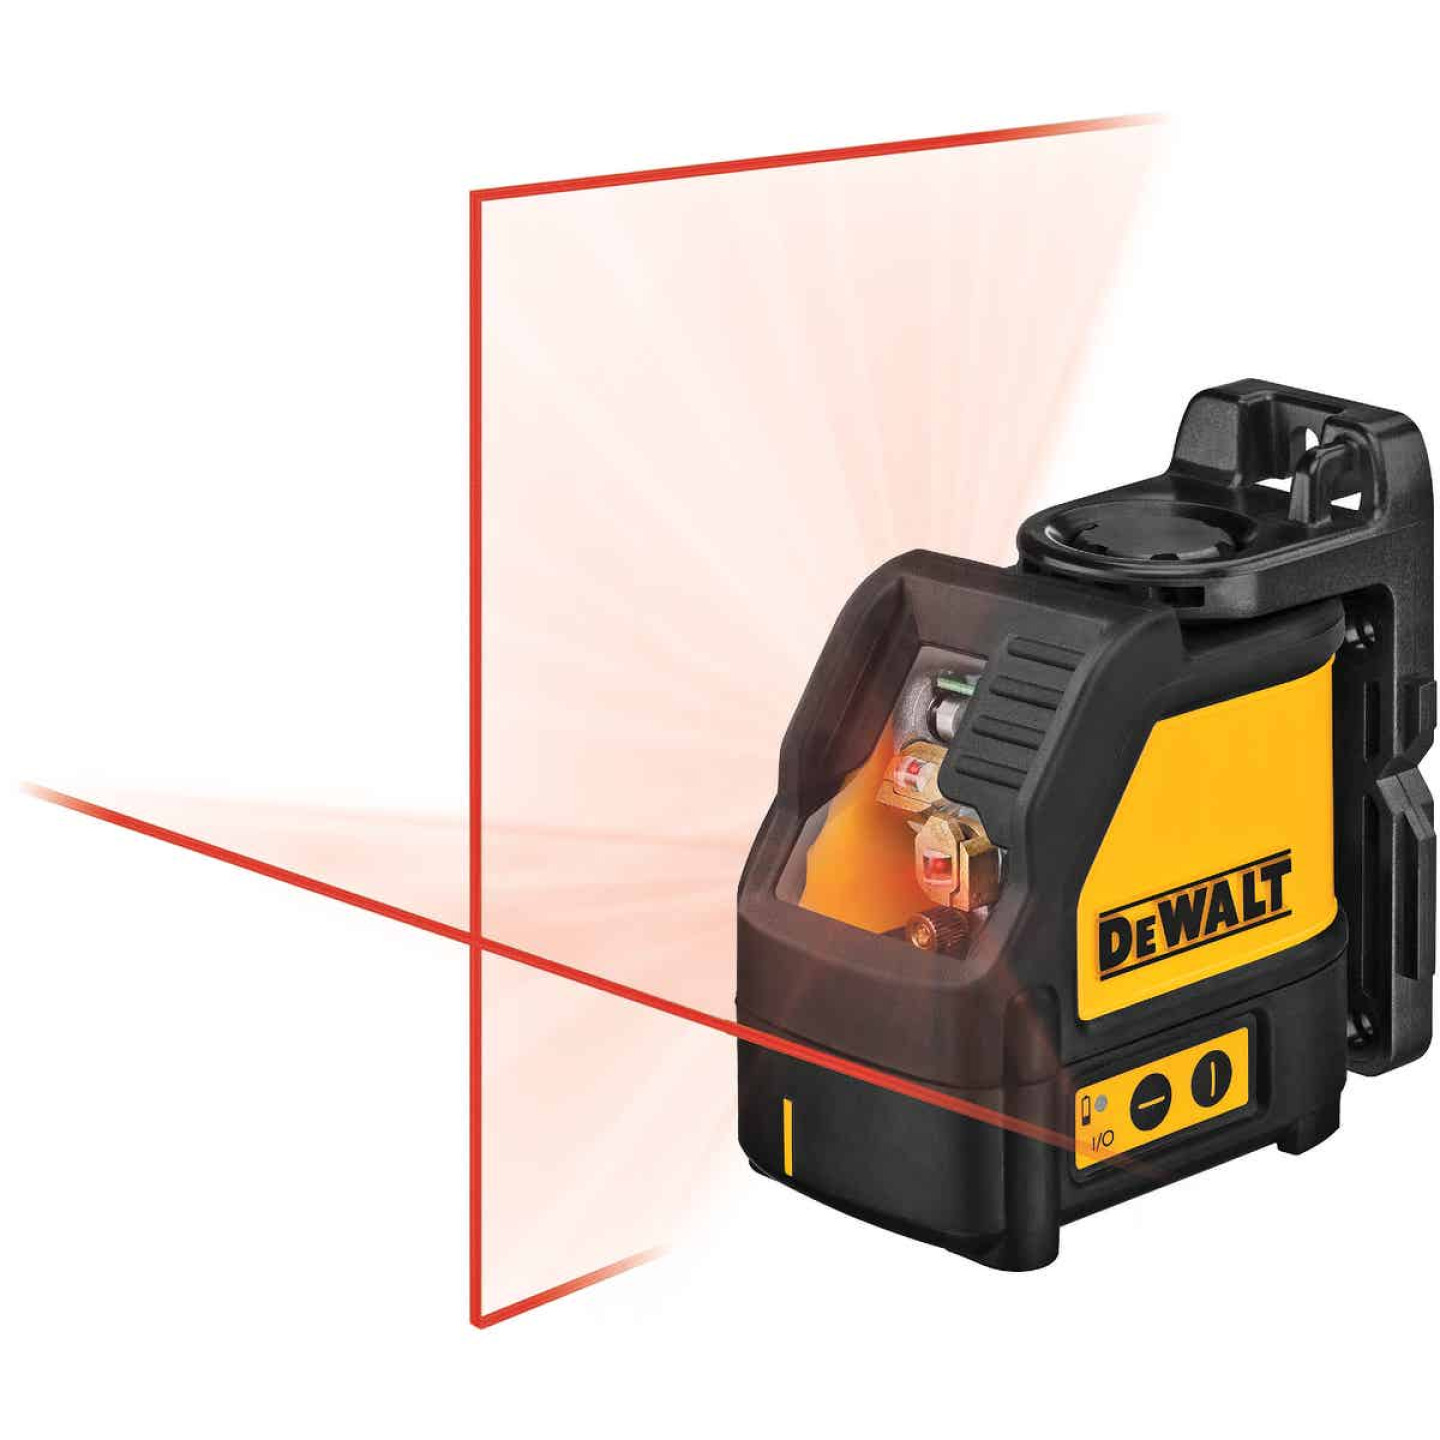 DeWalt 100 Ft. Self-Leveling Cross-Line Laser Level Image 7